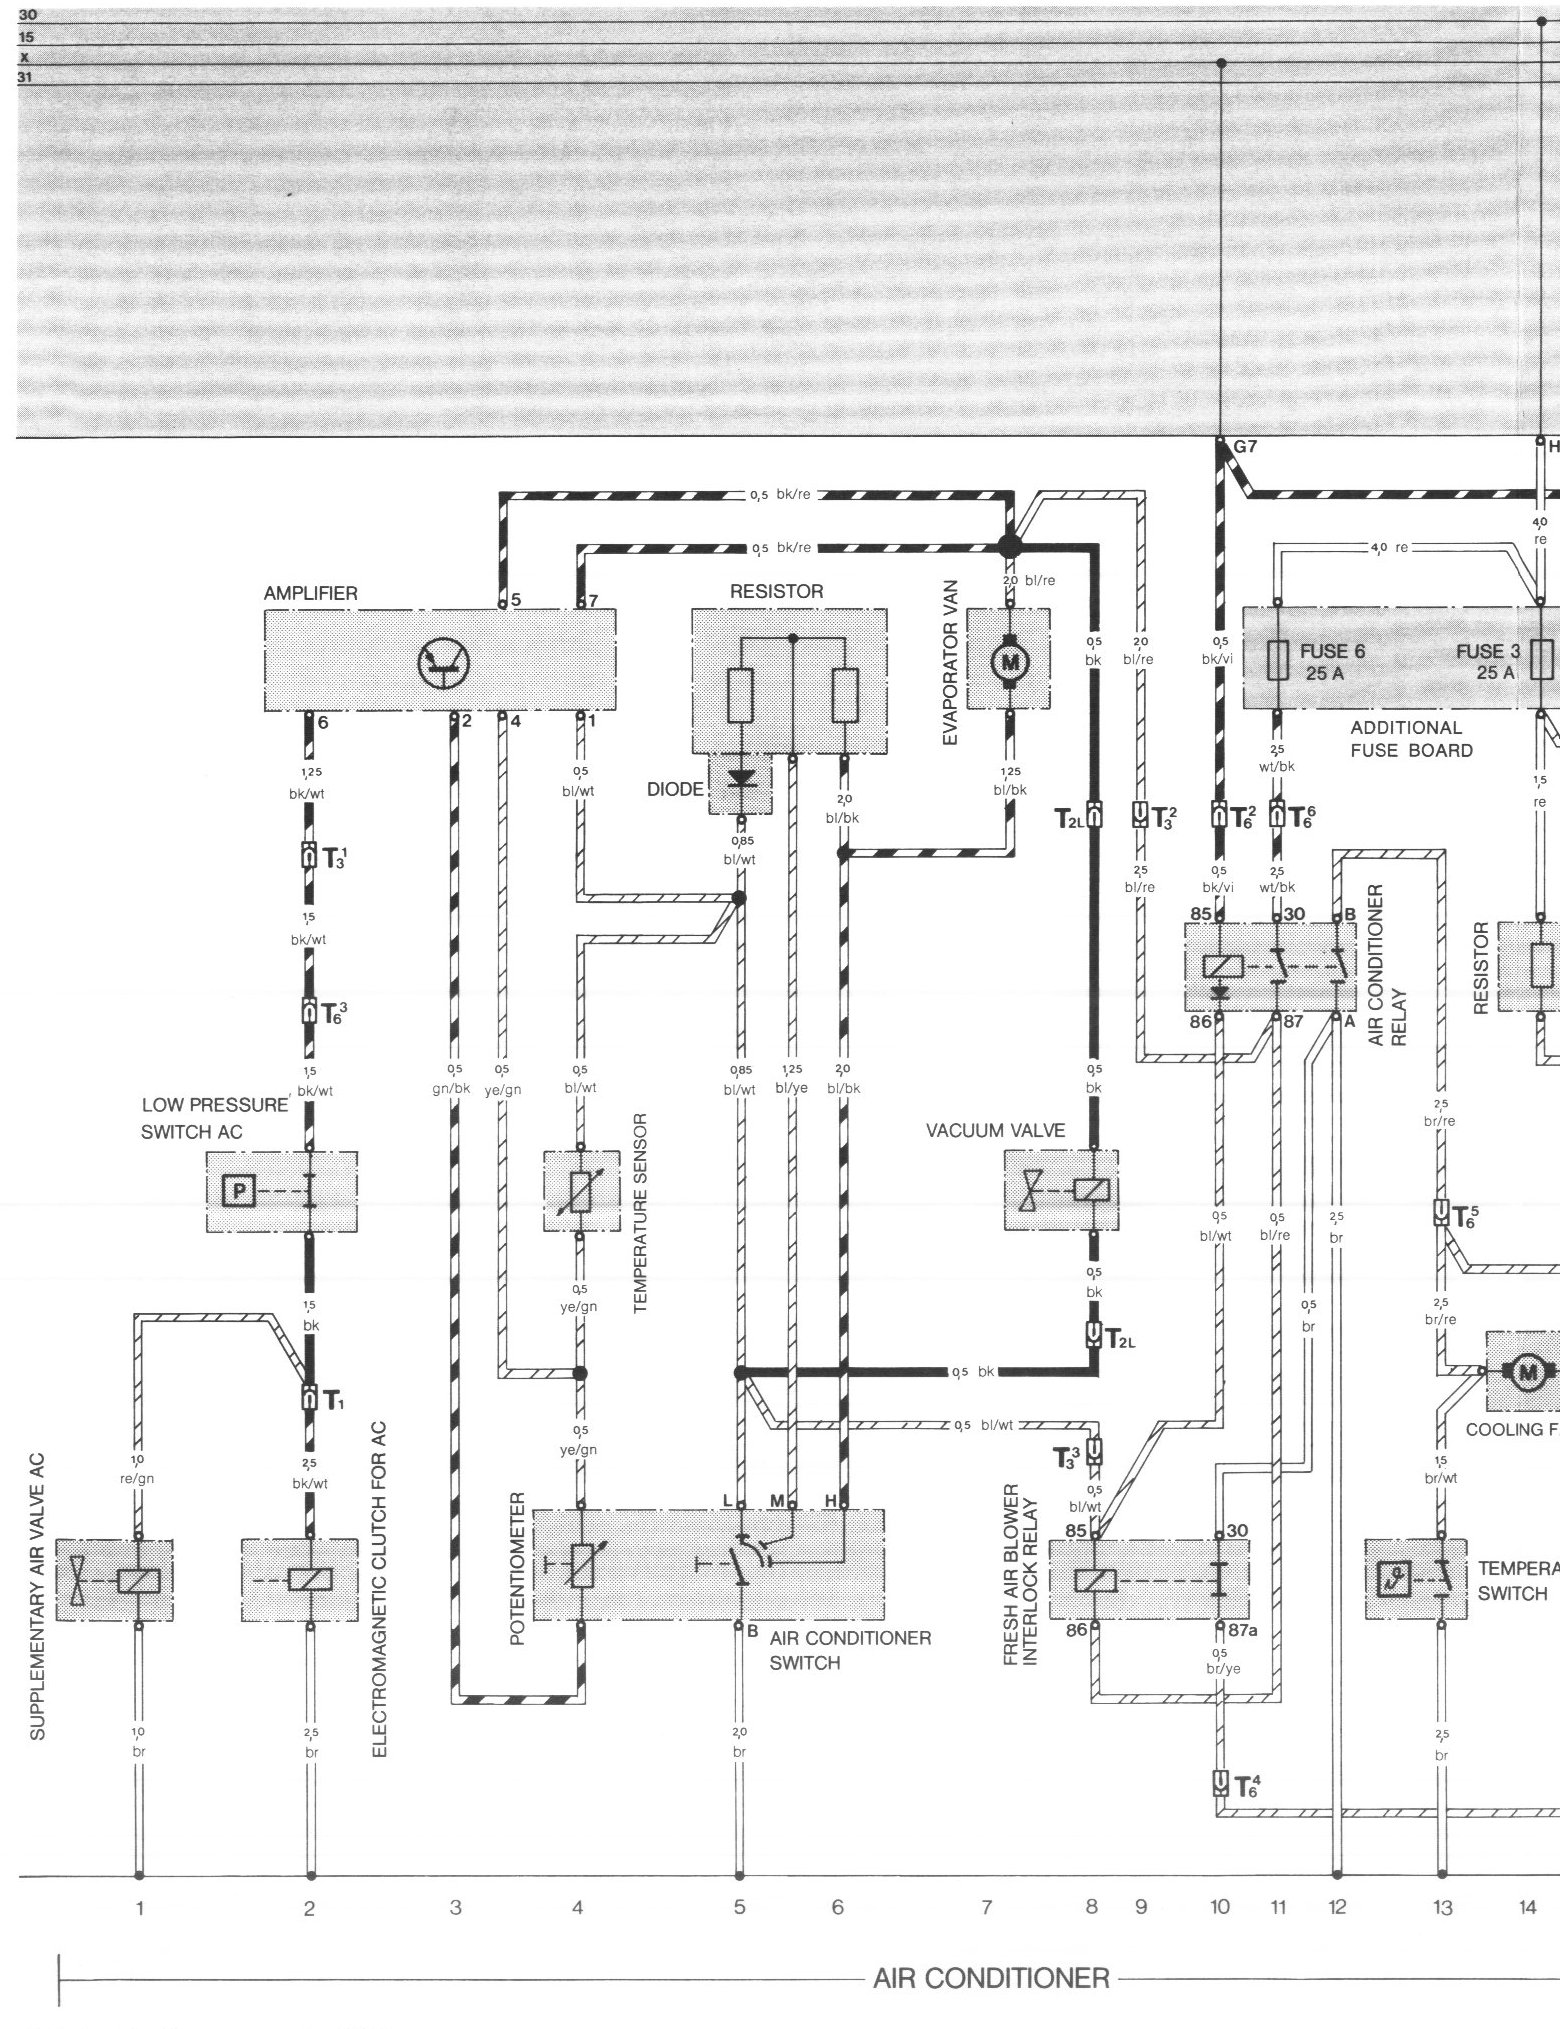 medium resolution of 84 944 fuse box diagram wiring librarypelican parts porsche 924 944 electrical diagrams porsche 944 fuse